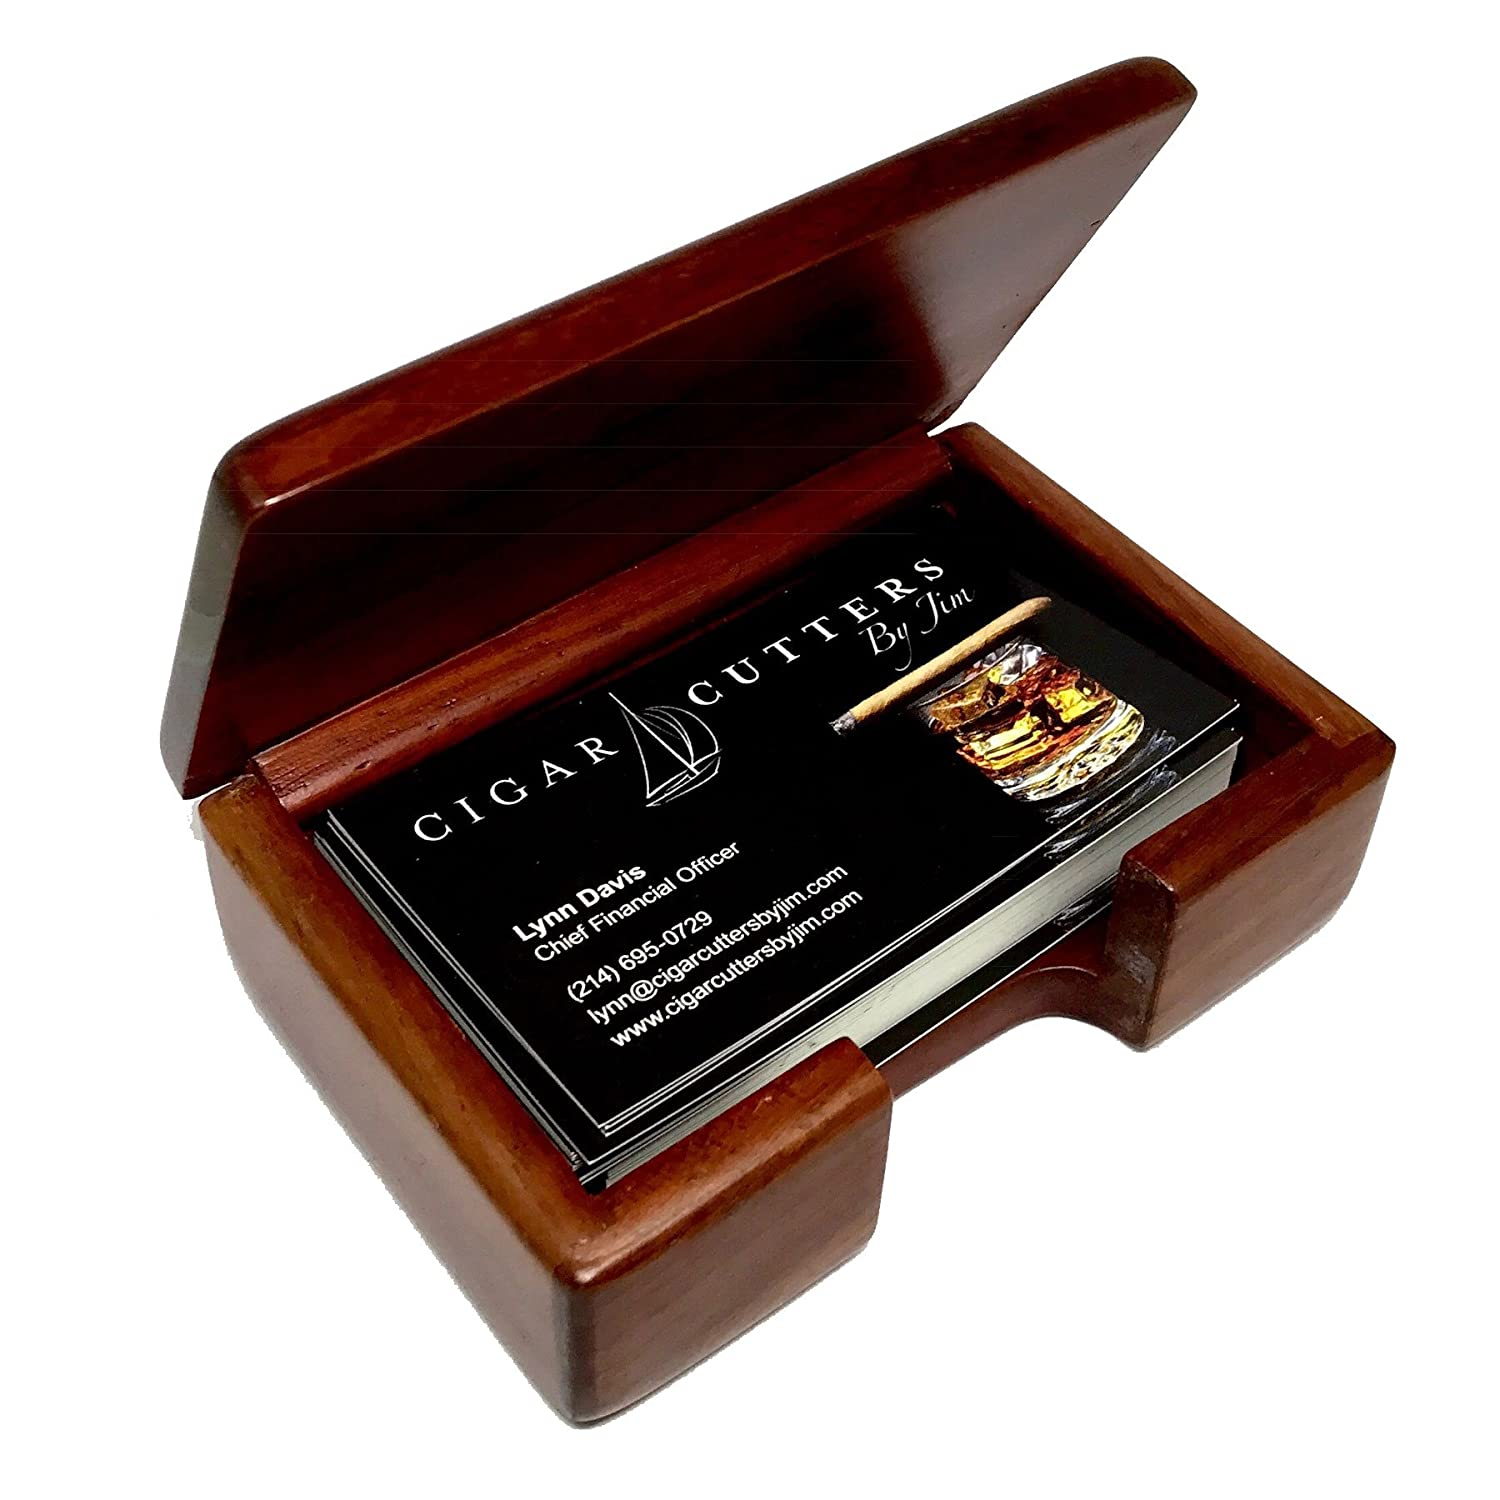 Amazon alligator business card holder rosewood business card amazon alligator business card holder rosewood business card box office products reheart Choice Image